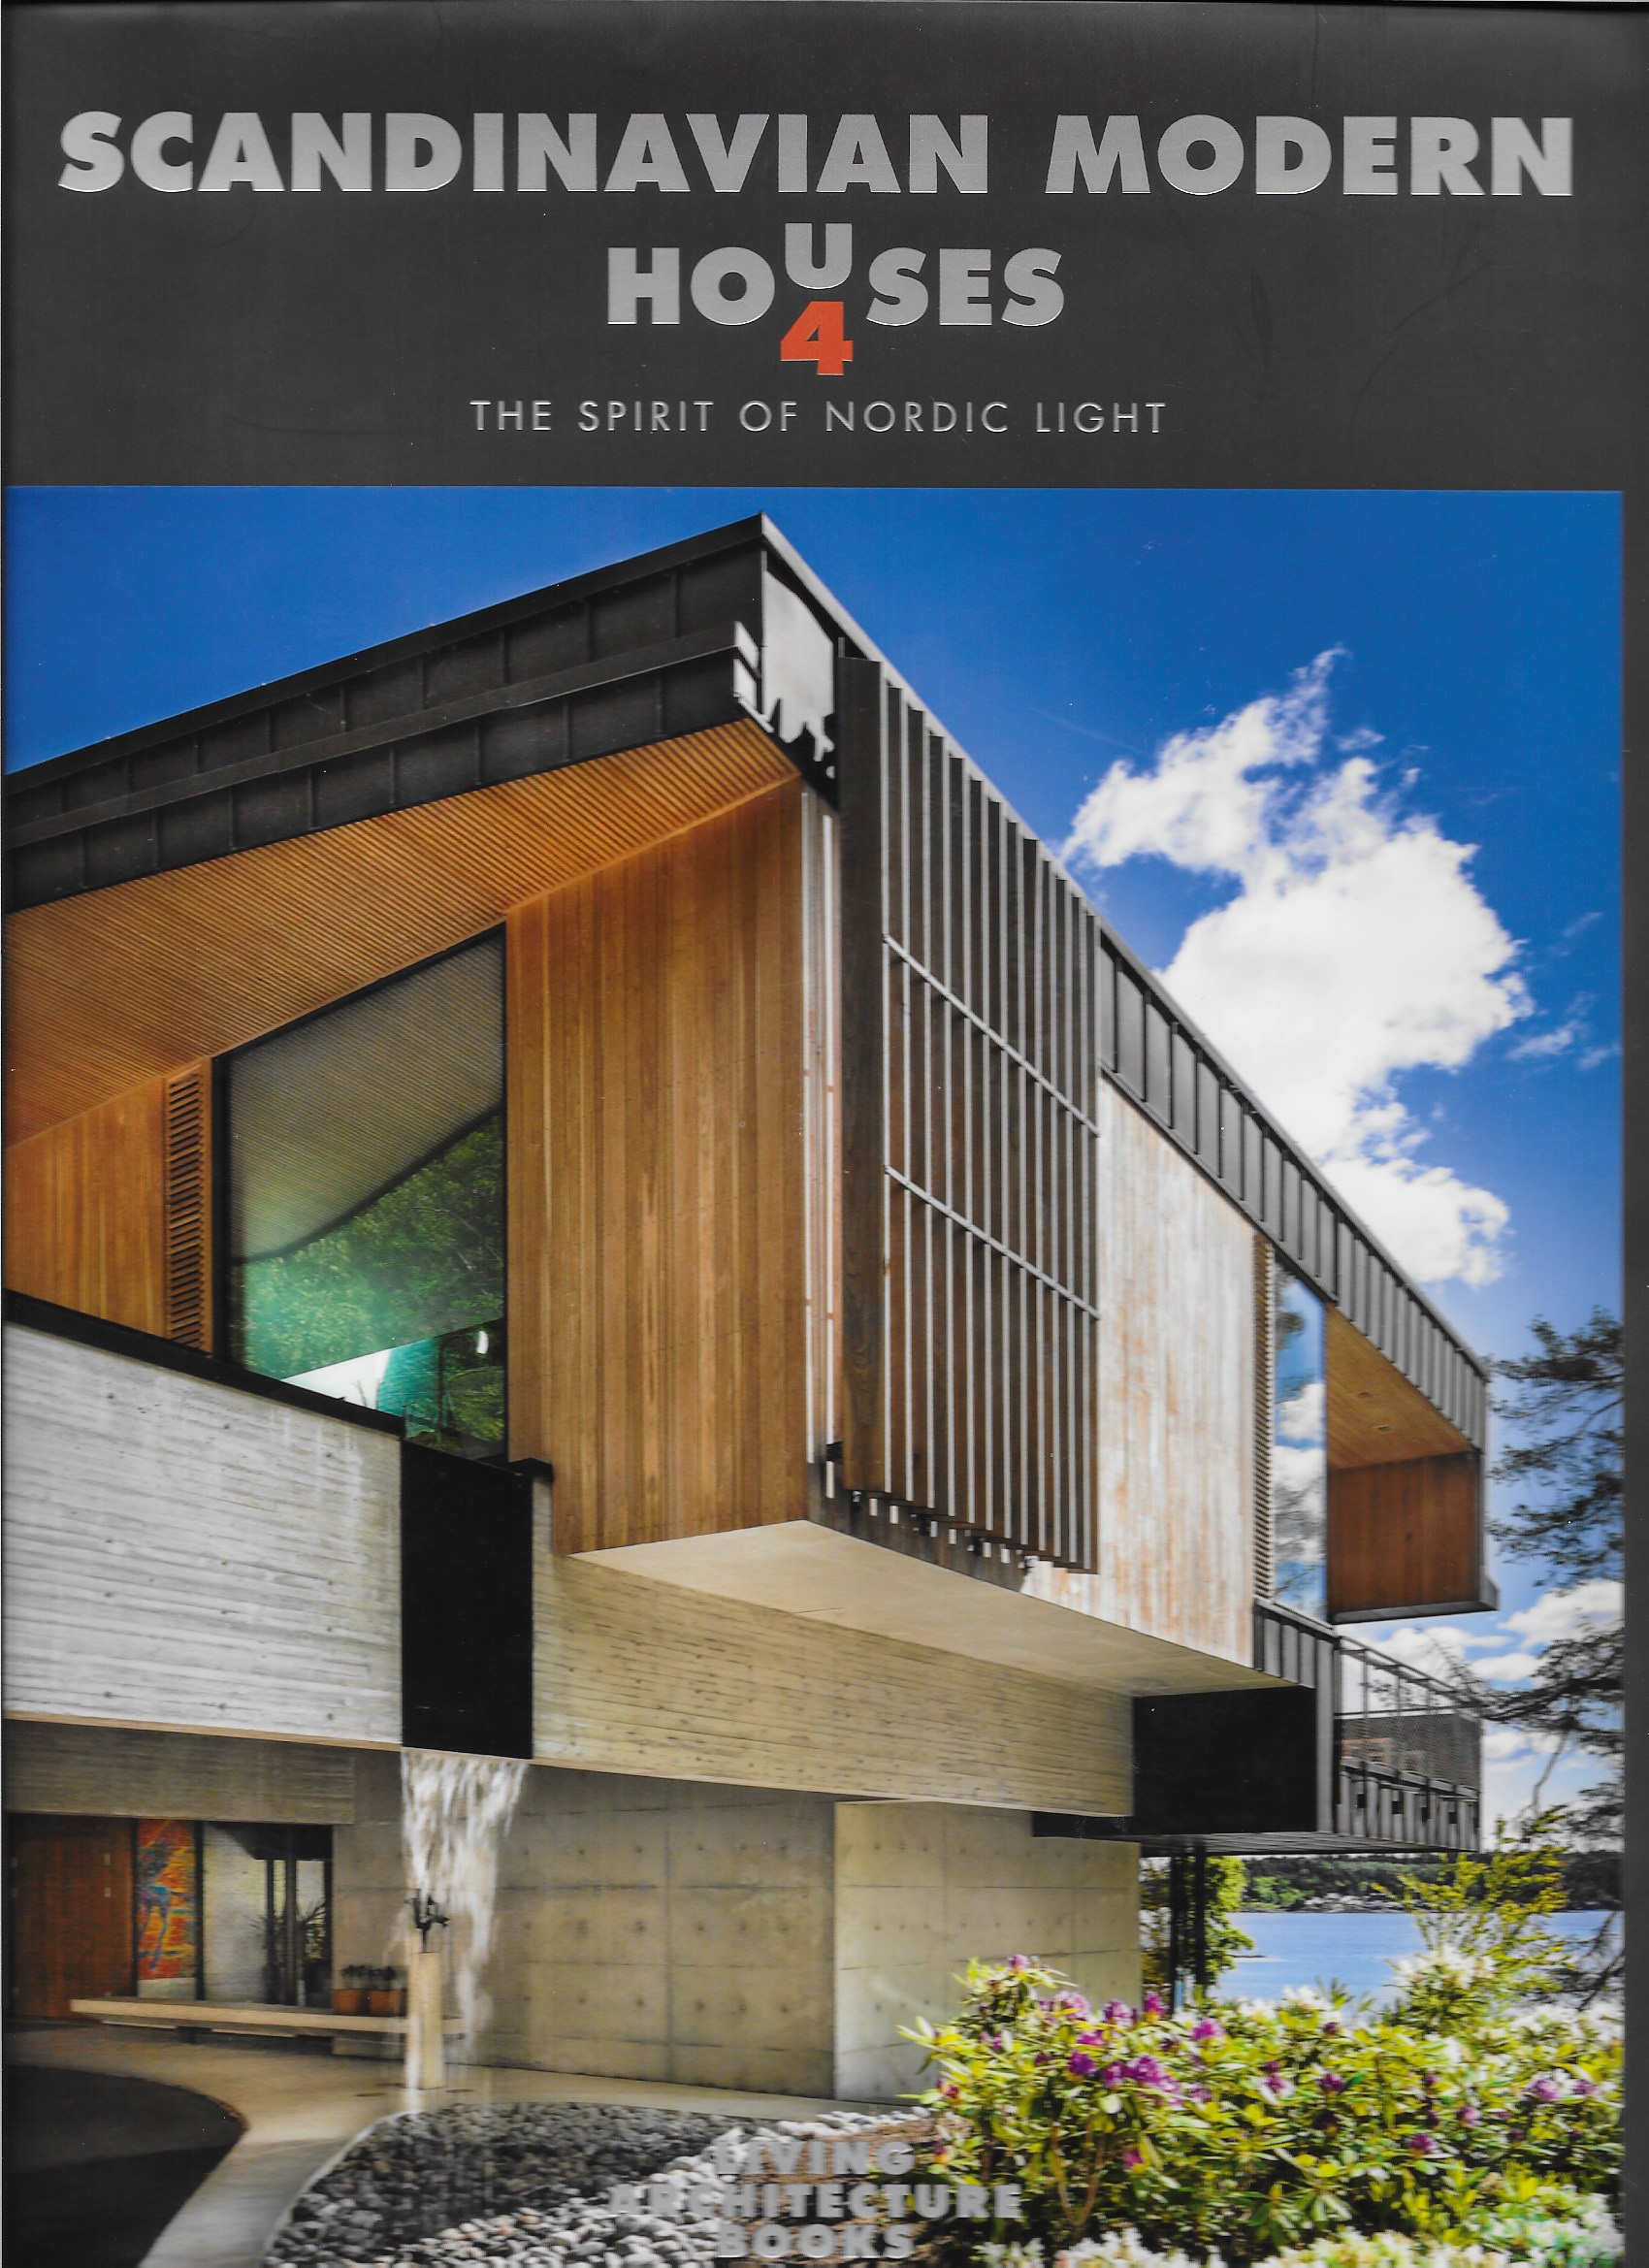 Scandinavian Modern Houses 4: The Spirit Of Nordic Light Is A Stunningly  Beautiful Book. Author Vibe Udsen Has Collated A Gorgeous Collection Of  Some Of ...